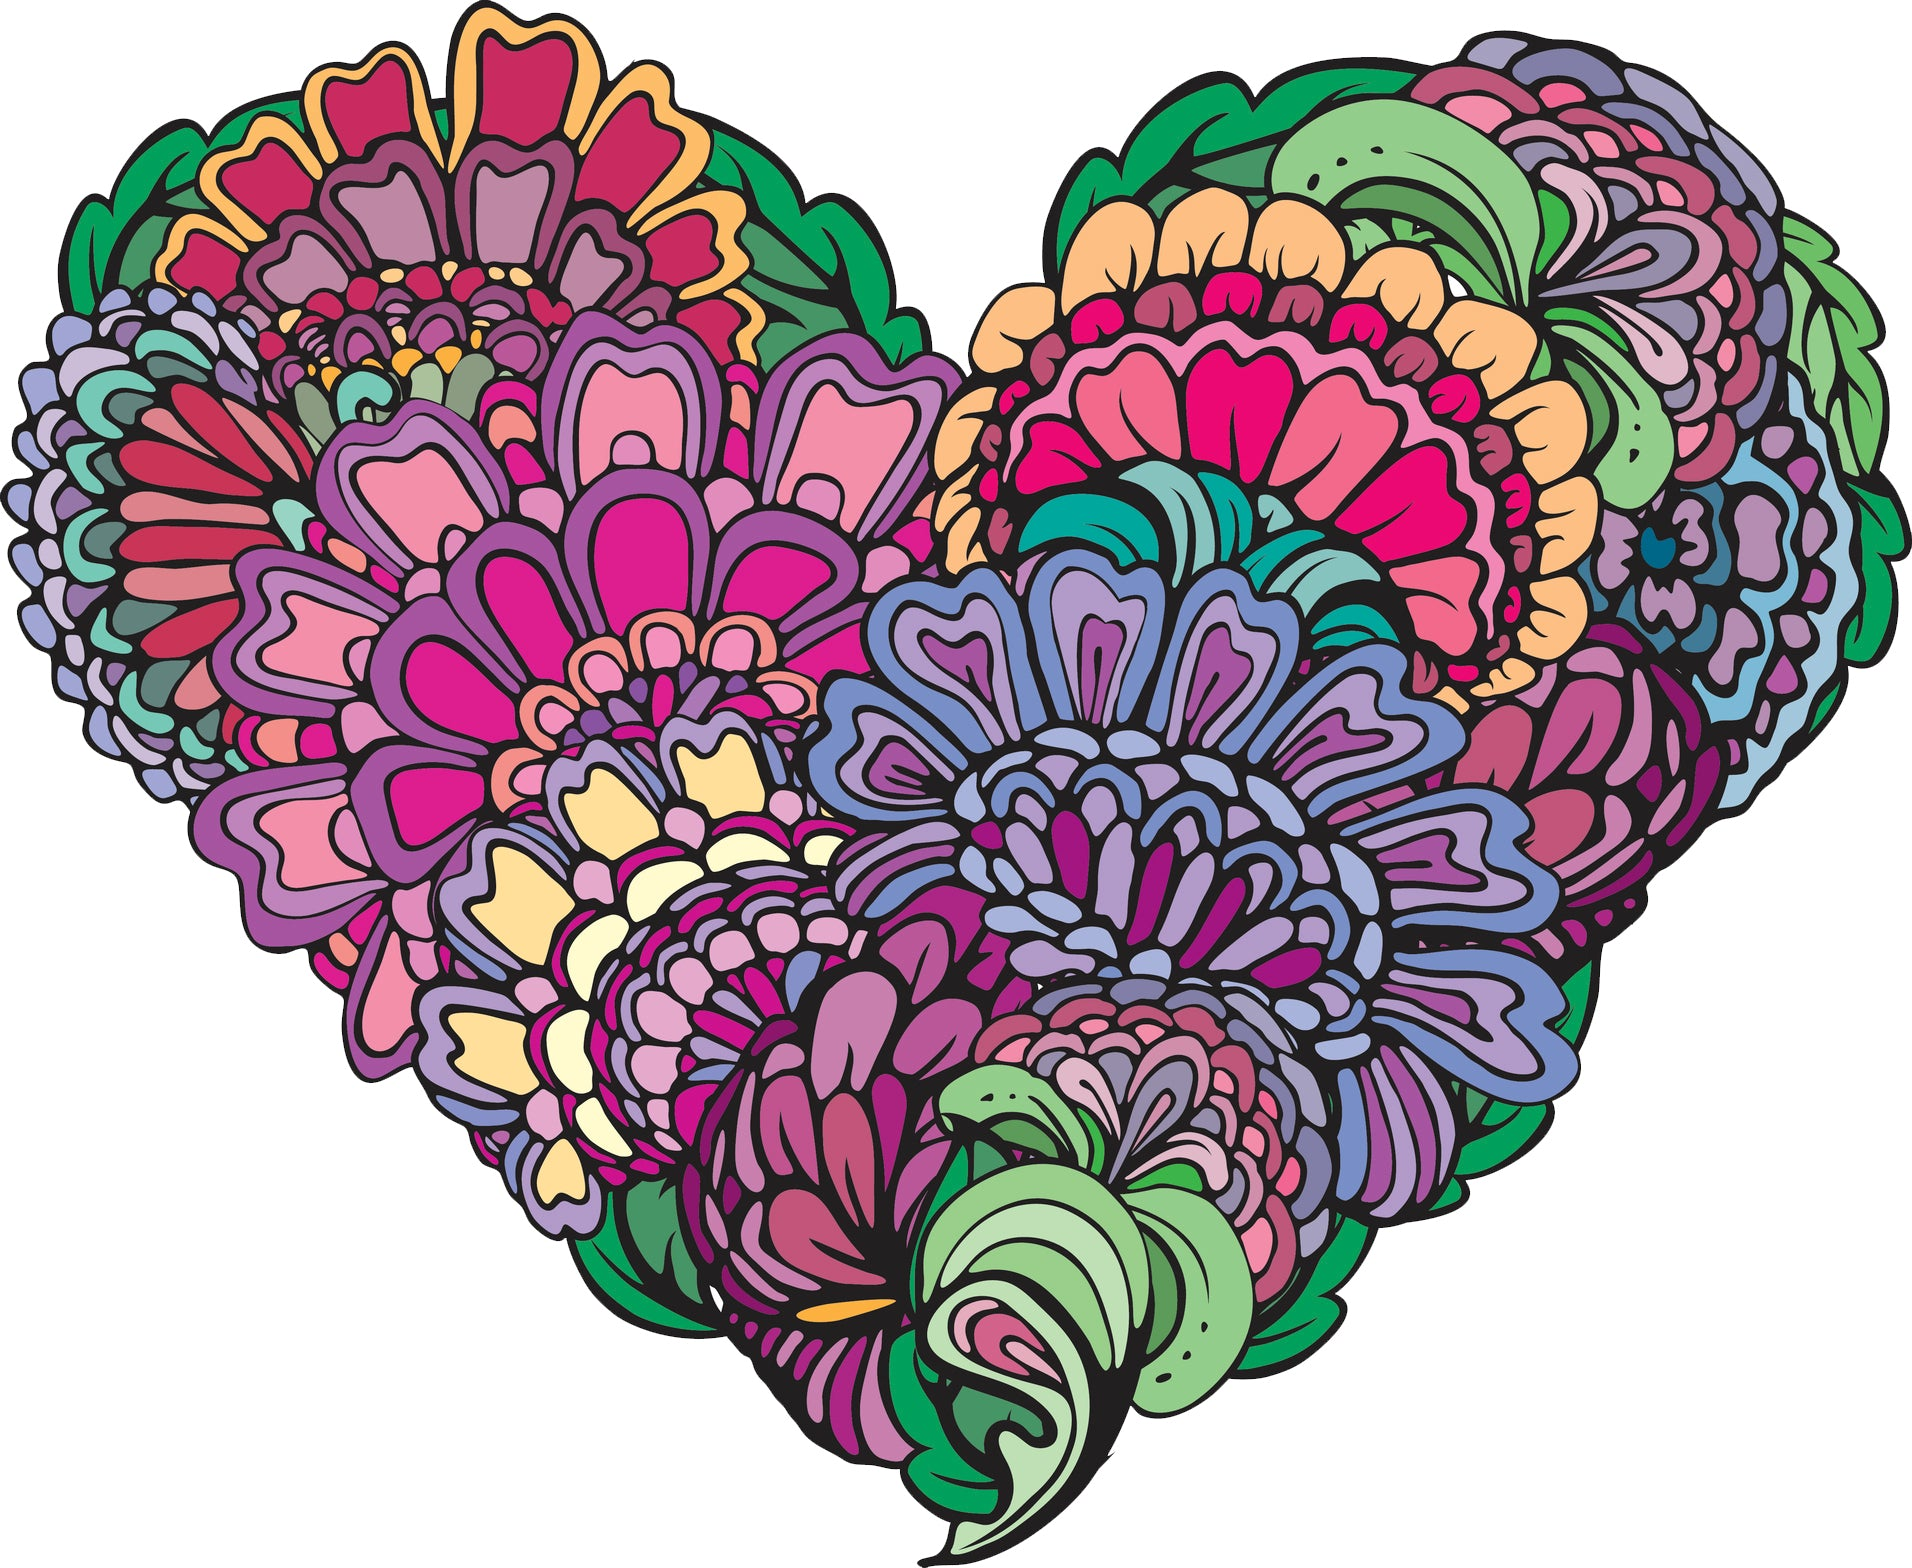 Pretty Colorful Abstract Flower Heart Cartoon Icon #2 Vinyl Decal Sticker